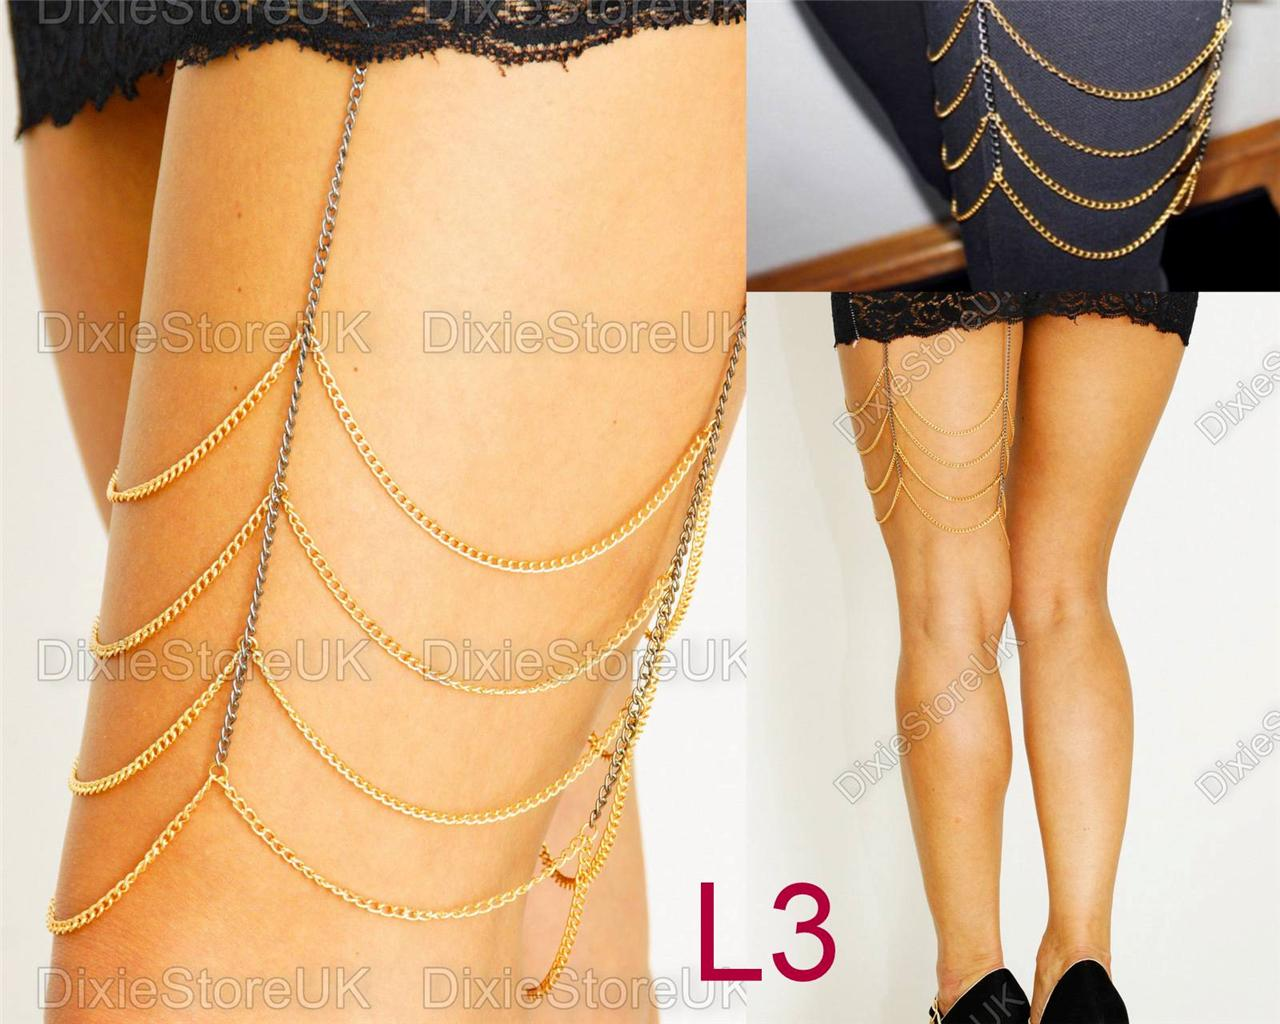 NEW-Stunning-Sexy-Leg-Body-Chain-Charm-Anklet-Ankle-Bracelet-Various-Styles